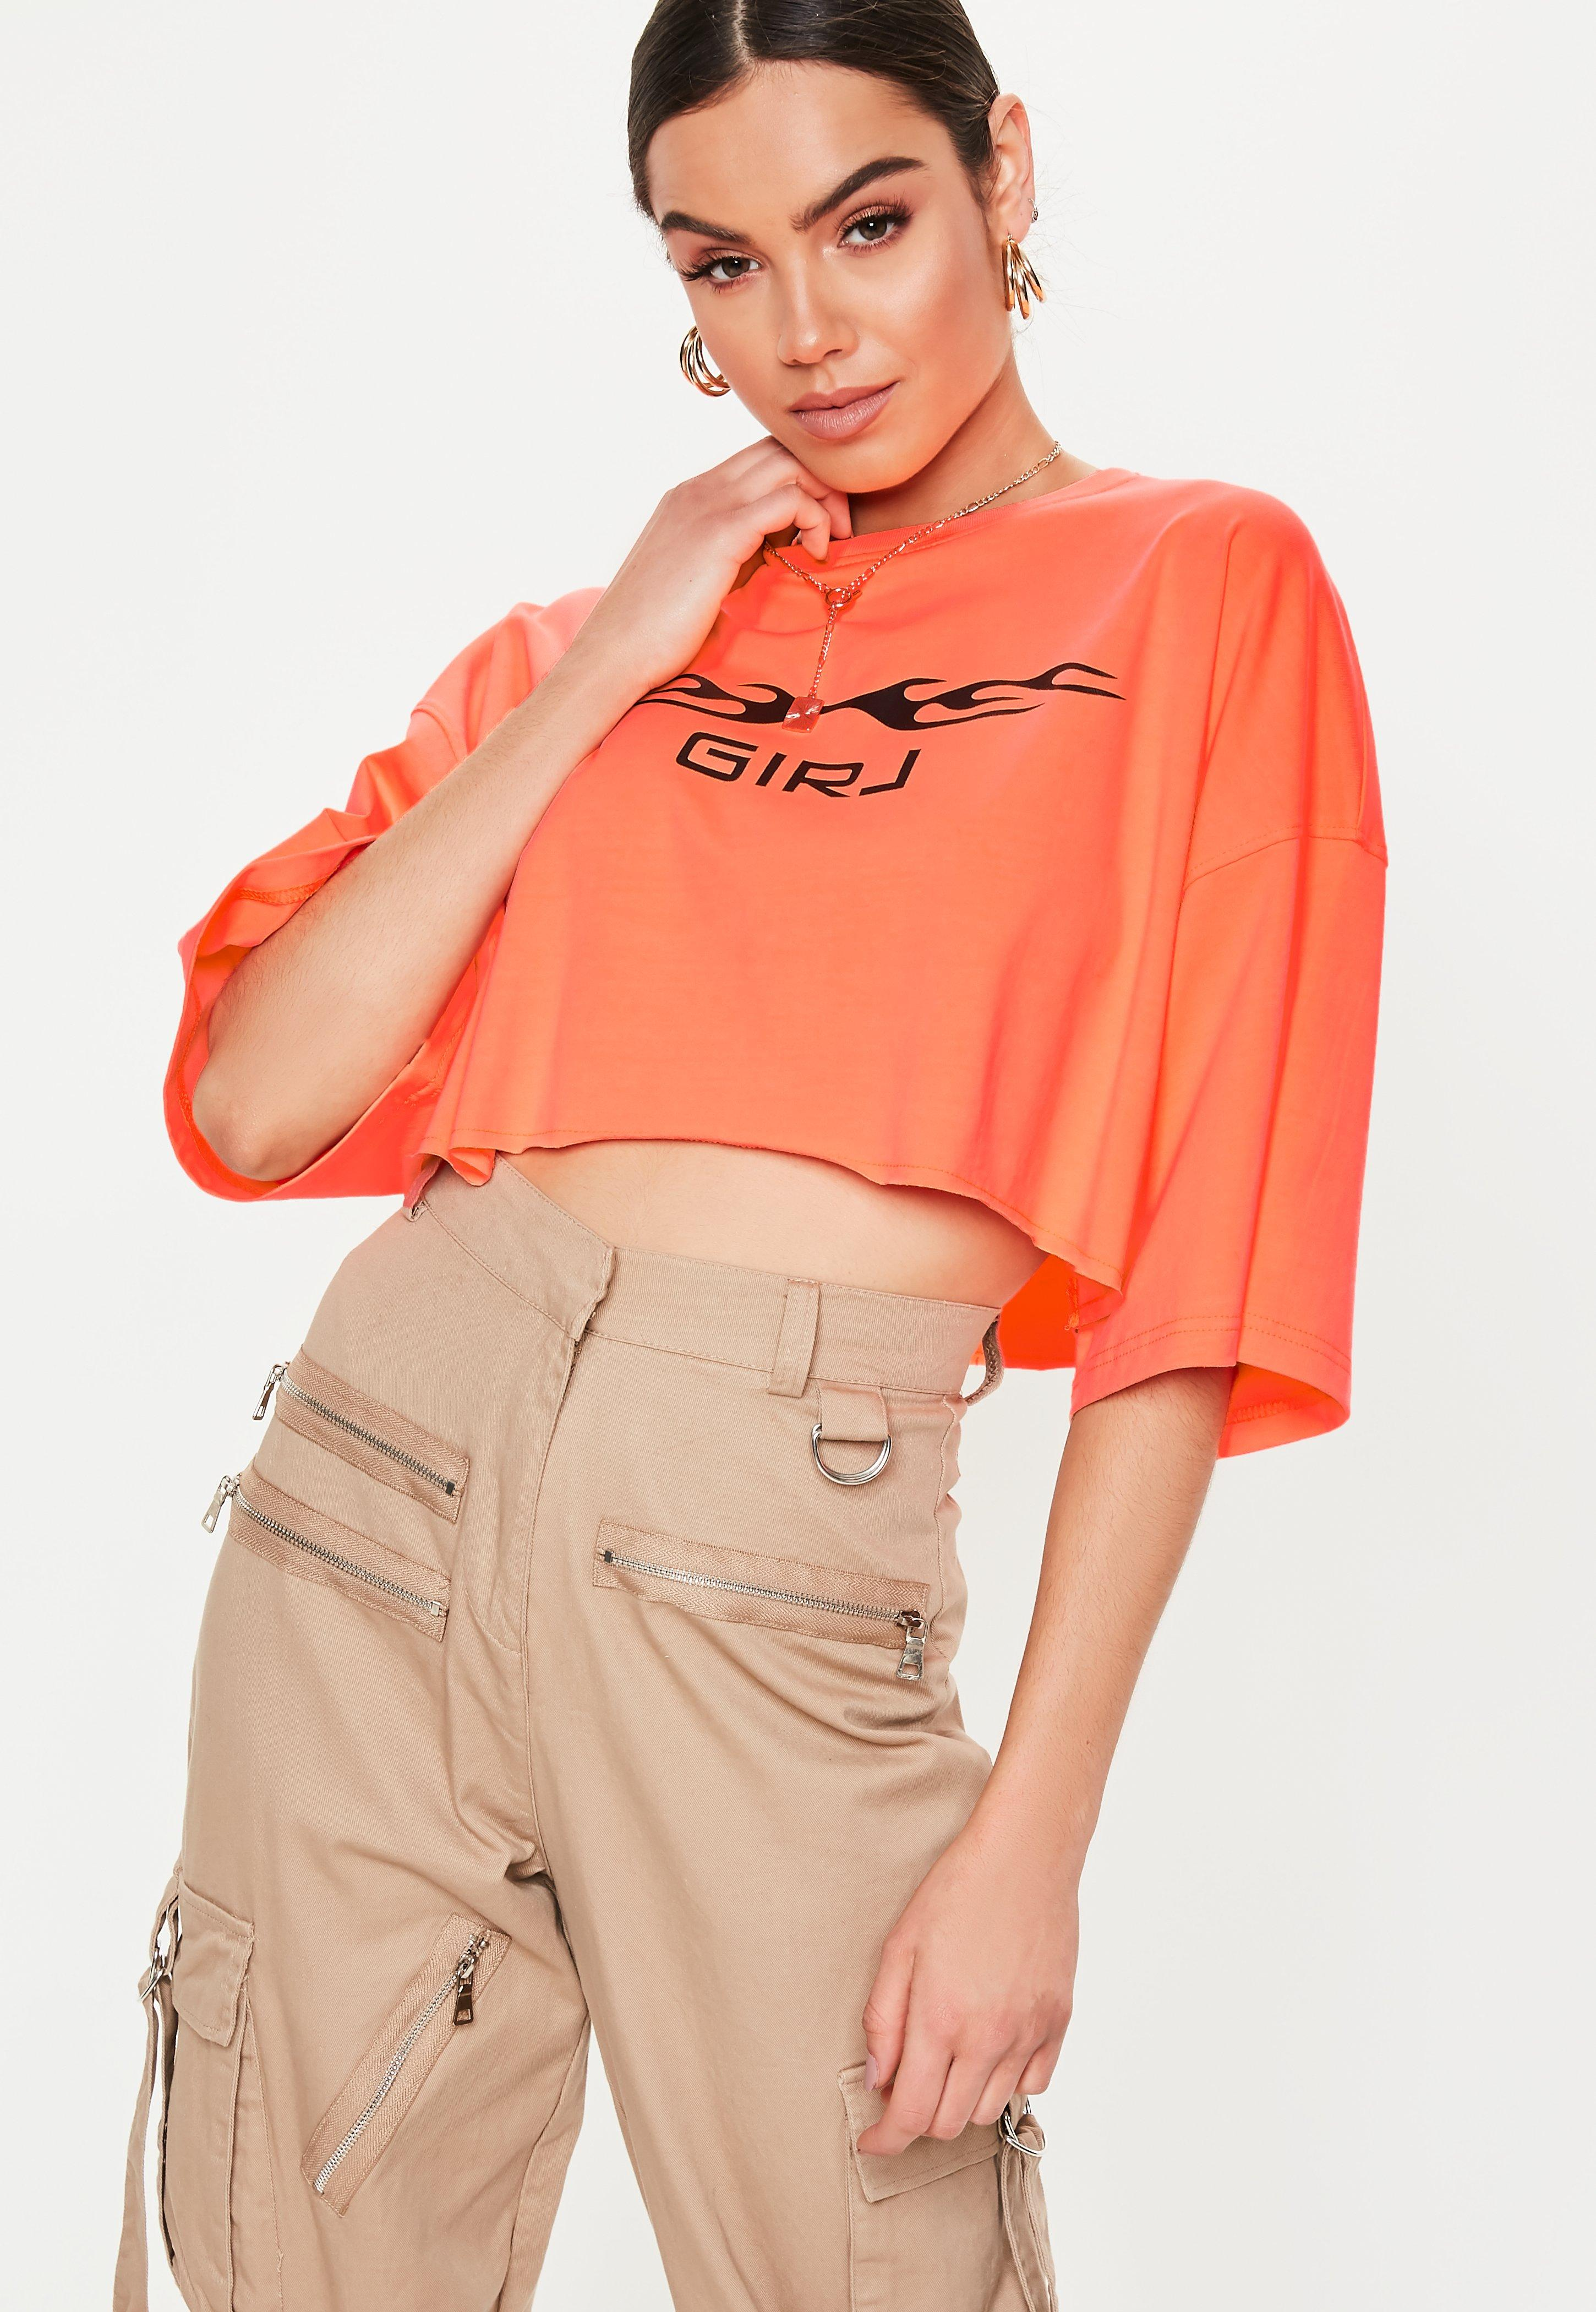 Graphic Clothing Online  3674fc49d